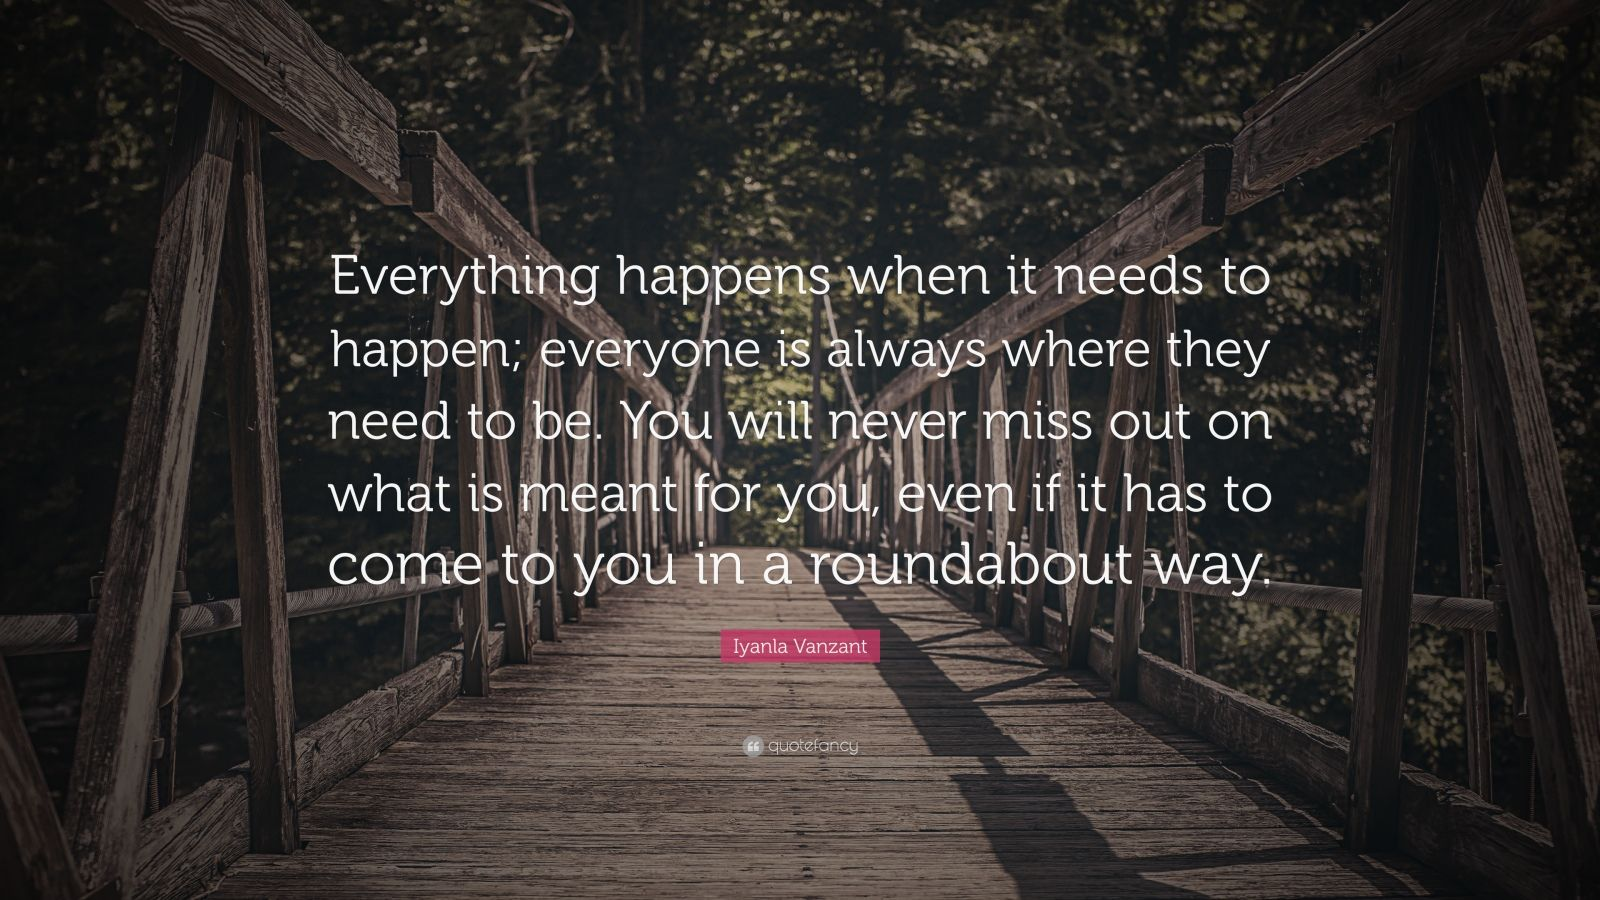 """Iyanla Vanzant Quote: """"Everything happens when it needs to happen; everyone is always where they need to be. You will never miss out on what is meant for you, even if it has to come to you in a roundabout way."""""""